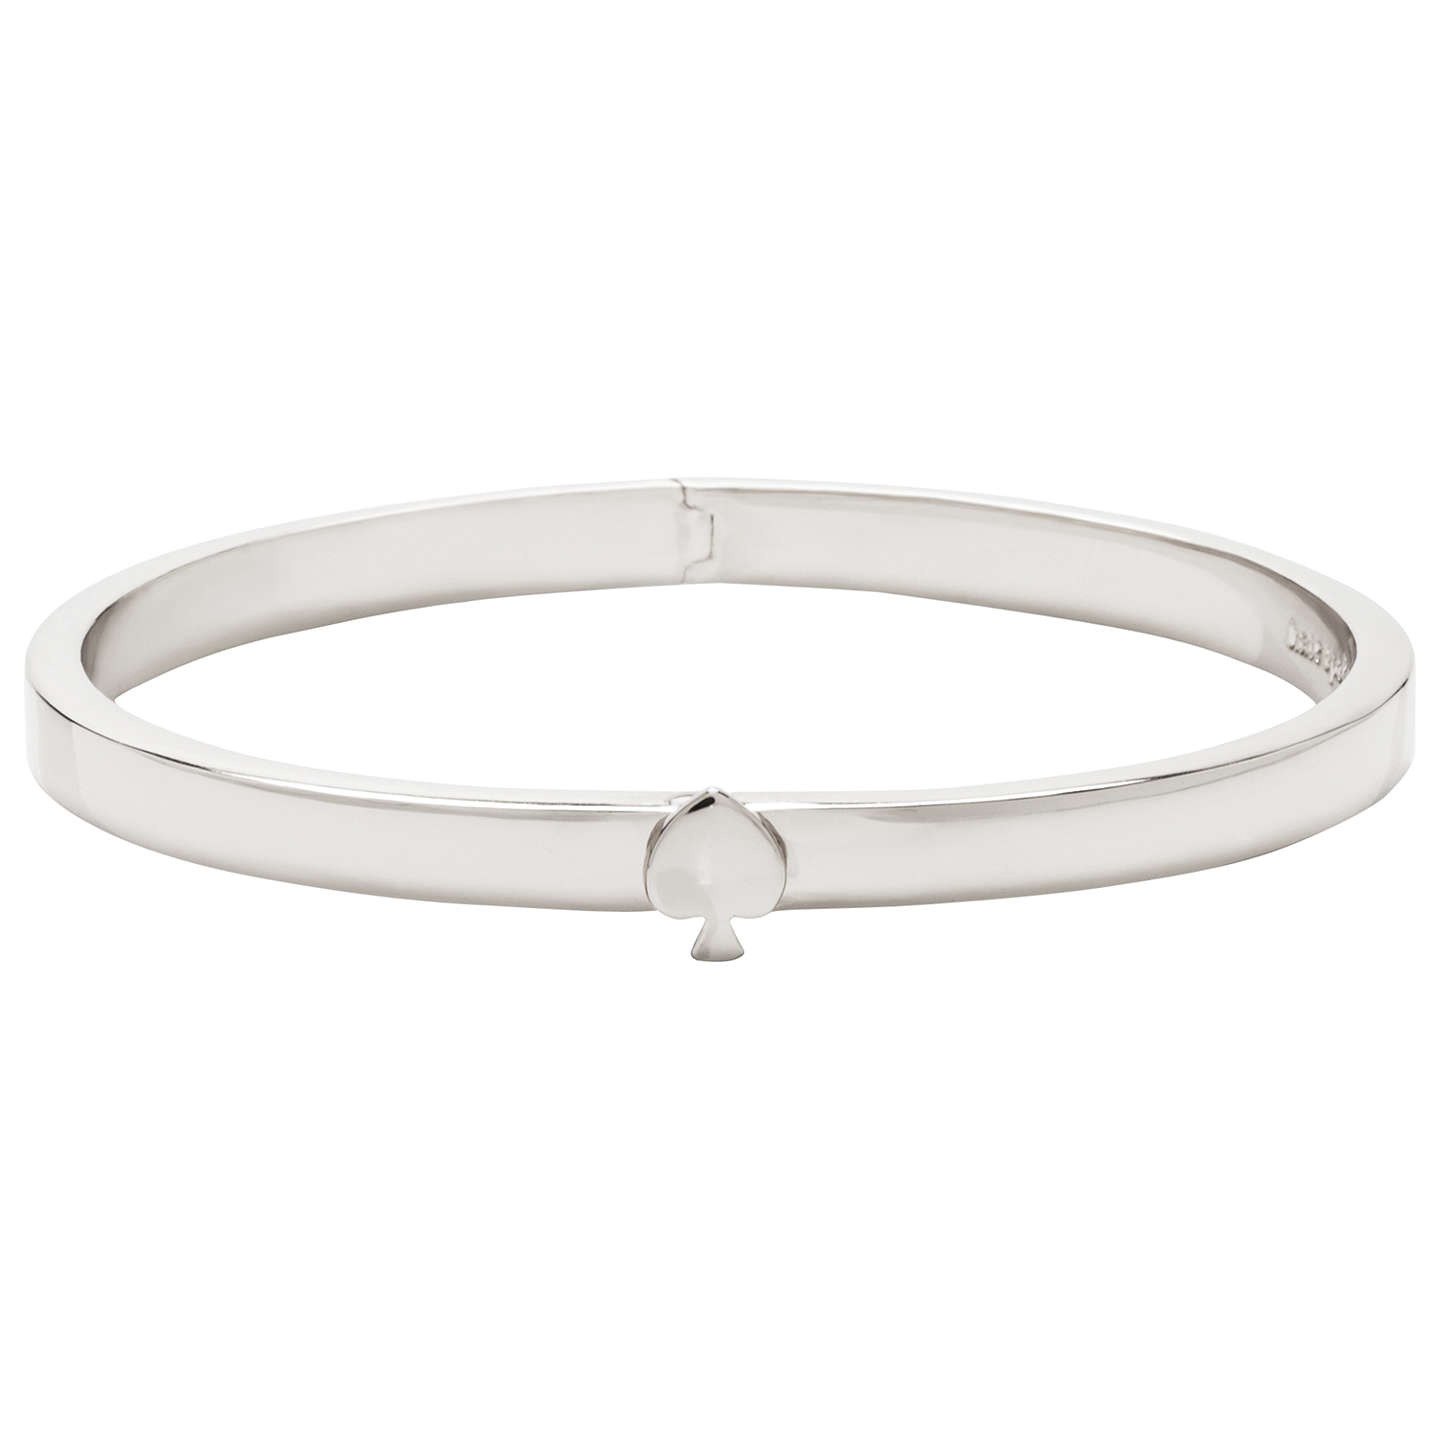 Buykate spade new york Thin Hinge Bangle, Silver Online at johnlewis.com